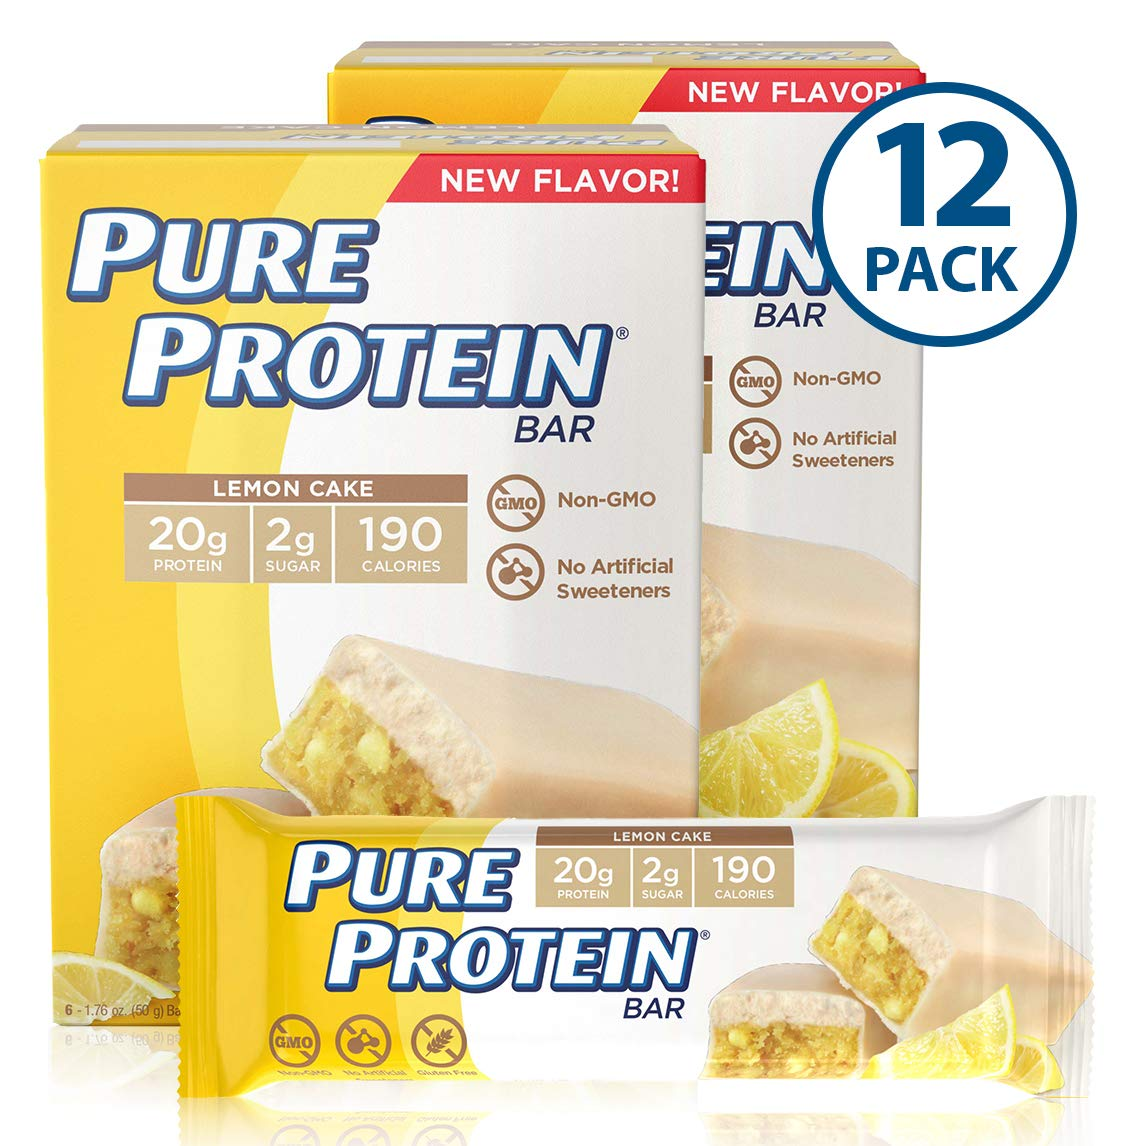 Pure Protein Bars, High Protein, Nutritious Snacks to Support Energy, Low Sugar, Gluten Free, Lemon Cake, 1.76oz, 12 Pack by Pure Protein